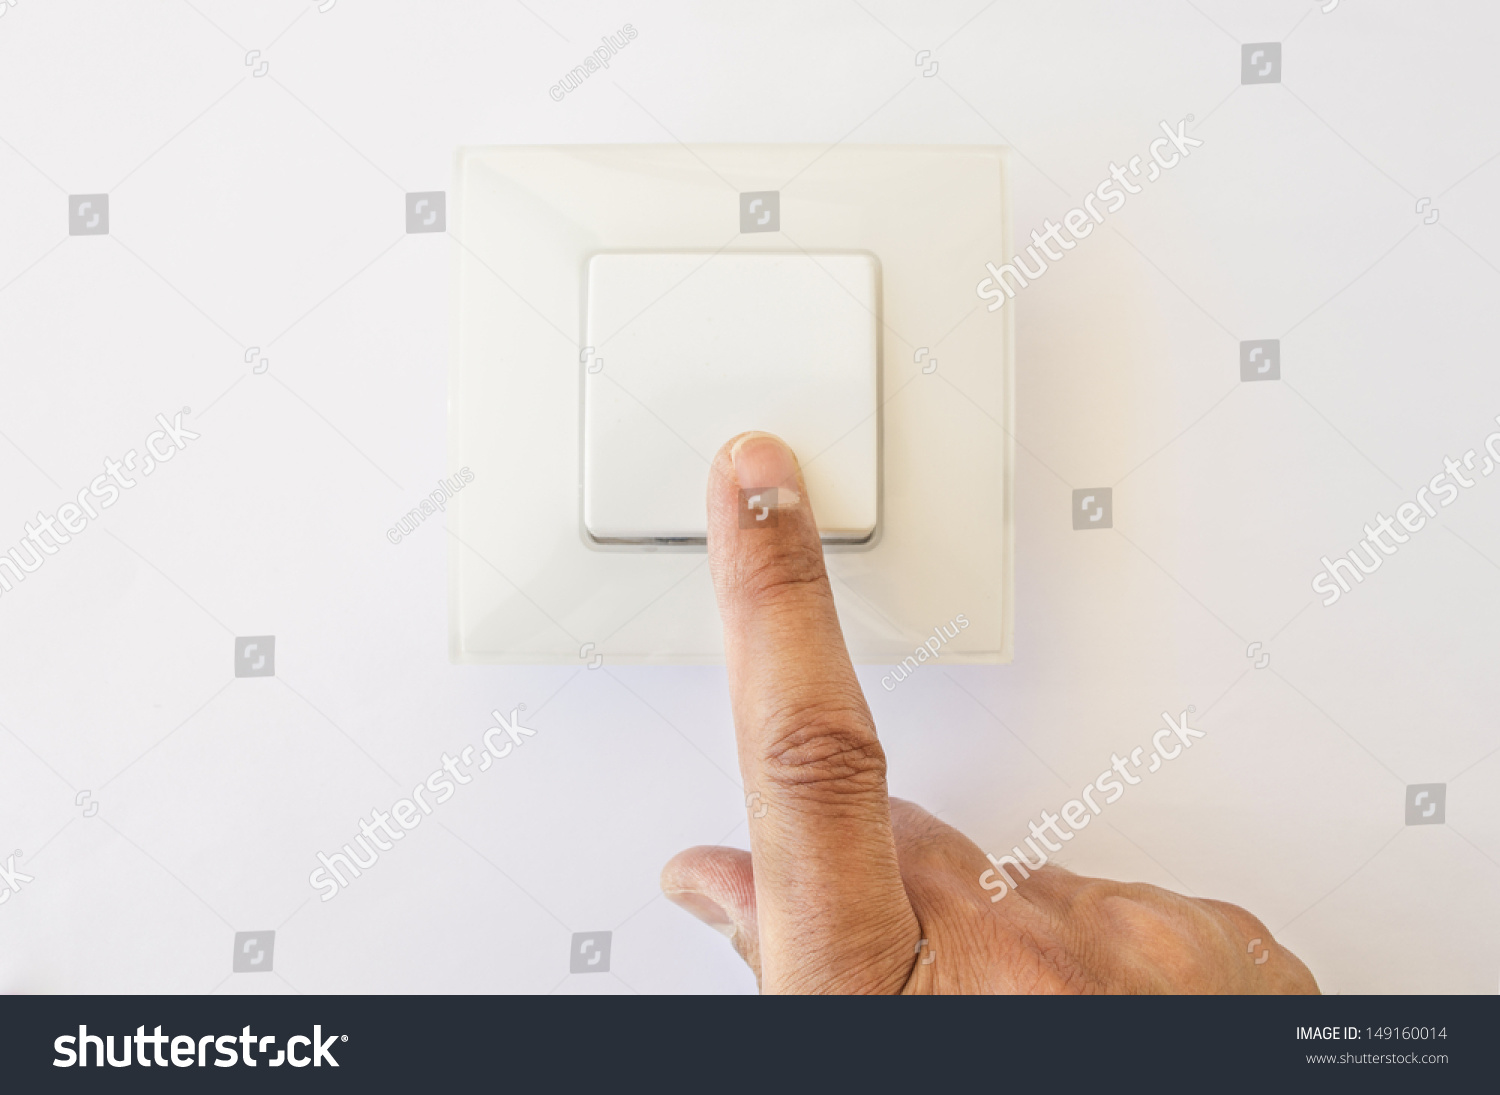 Modern Light Switch Being Flipped Off Stock Photo 149160014 ... for Light Switch Off Position  103wja